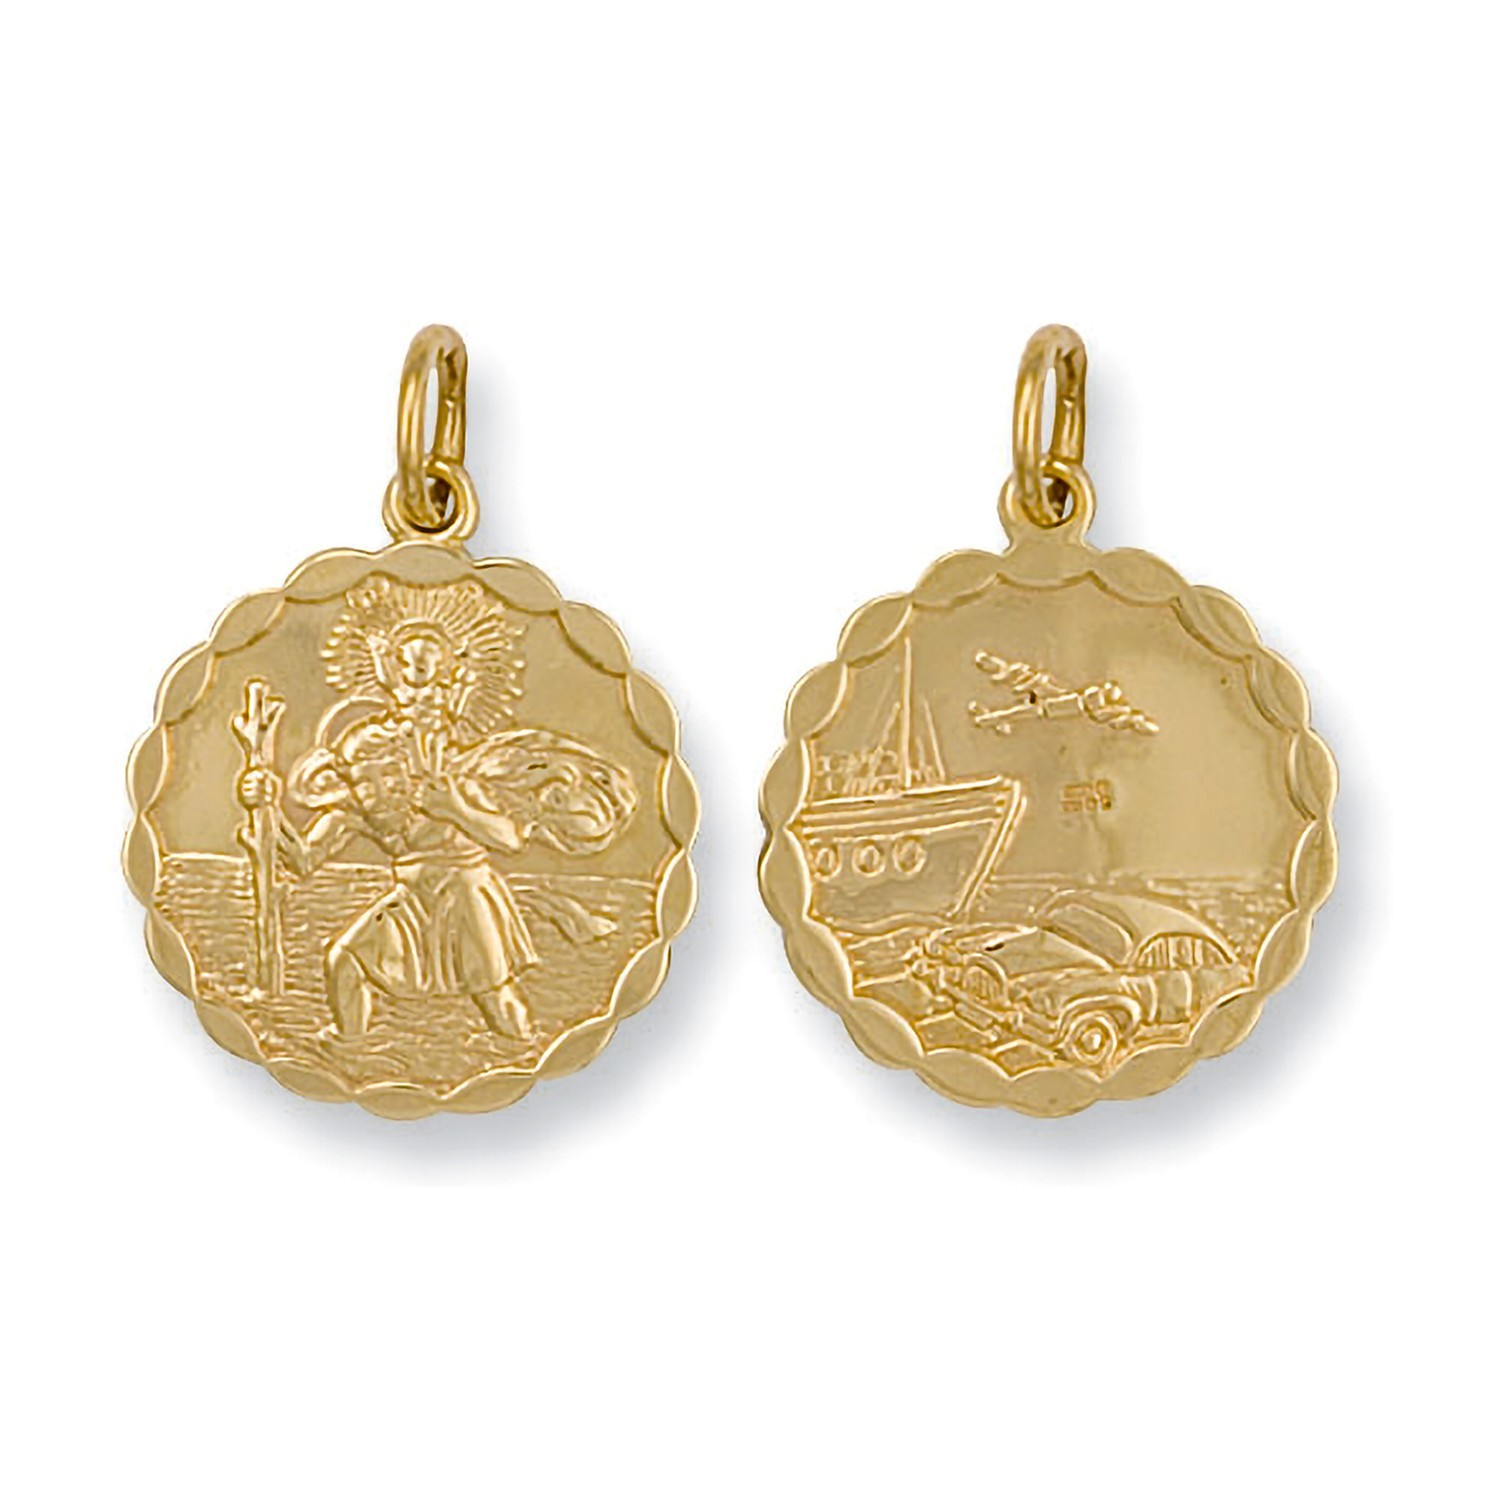 Y/G Double Sided Fancy St Christopher Pendant